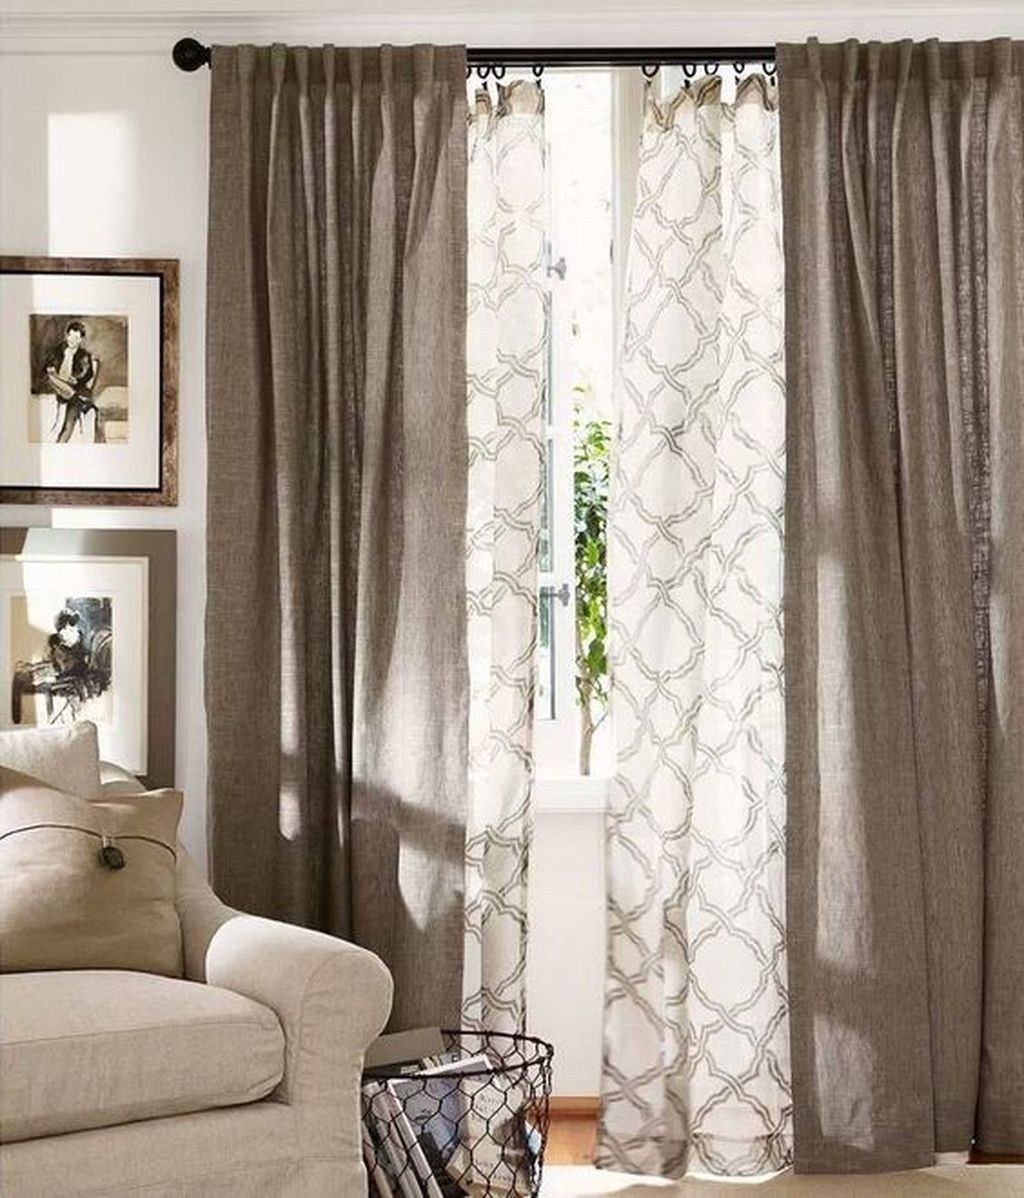 44 Beautiful Home Curtain Ideas For Your Interior Design To Looks Elegant Trendehouse Window Treatments Living Room Curtains Living Room Curtains Living